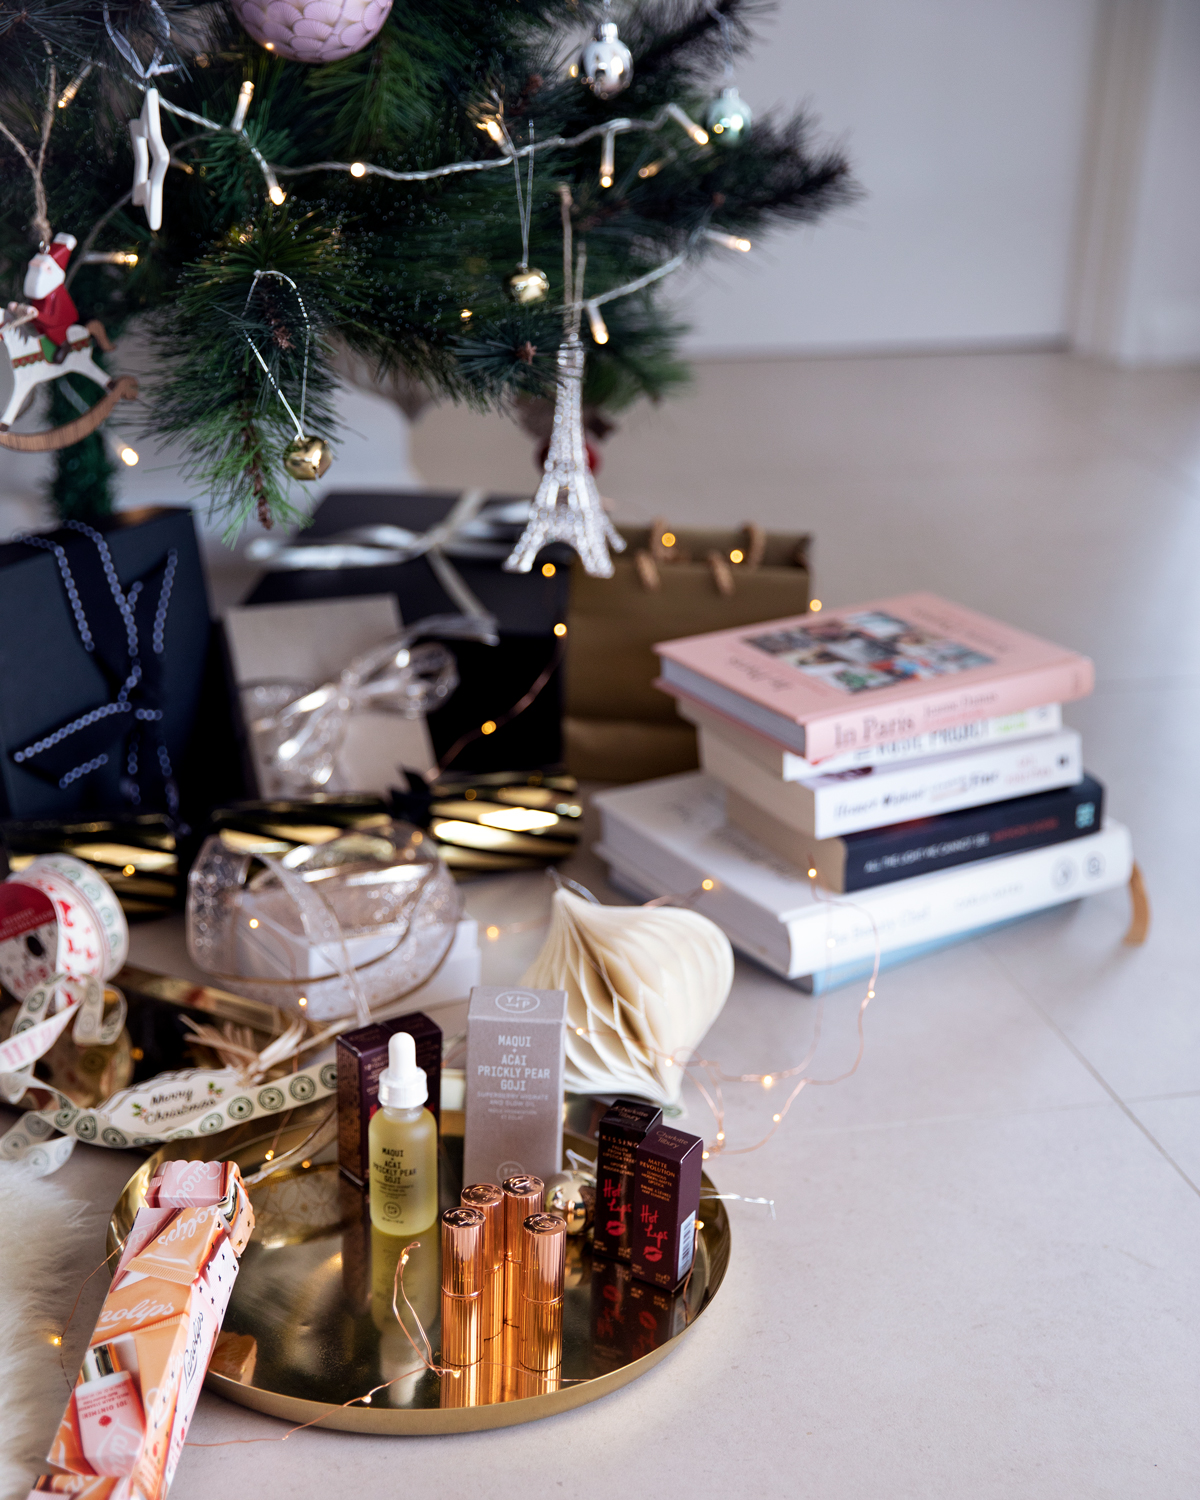 2018 Christmas gift guide Inspiring Wit blog featuring women's and lifestyle gift ideas underneath the Christmas tree